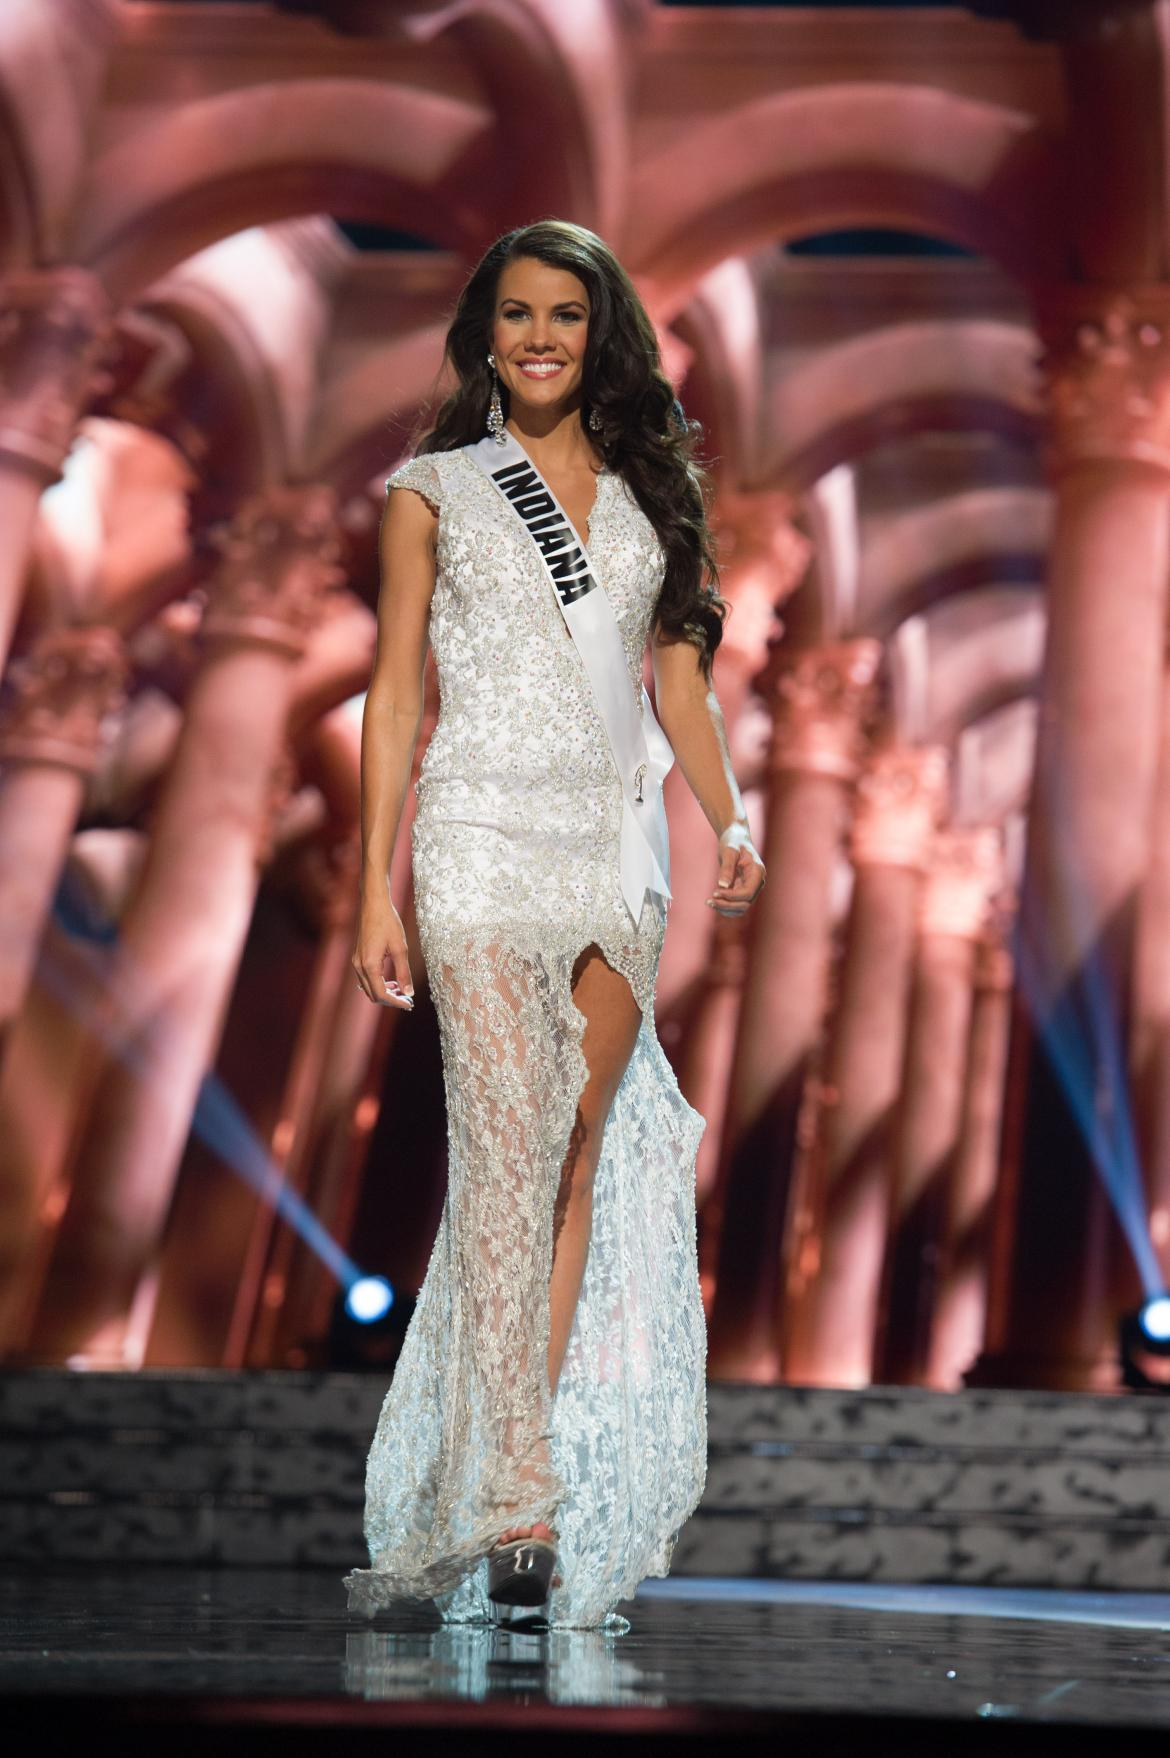 Miss USA 2016 Photos: Indiana